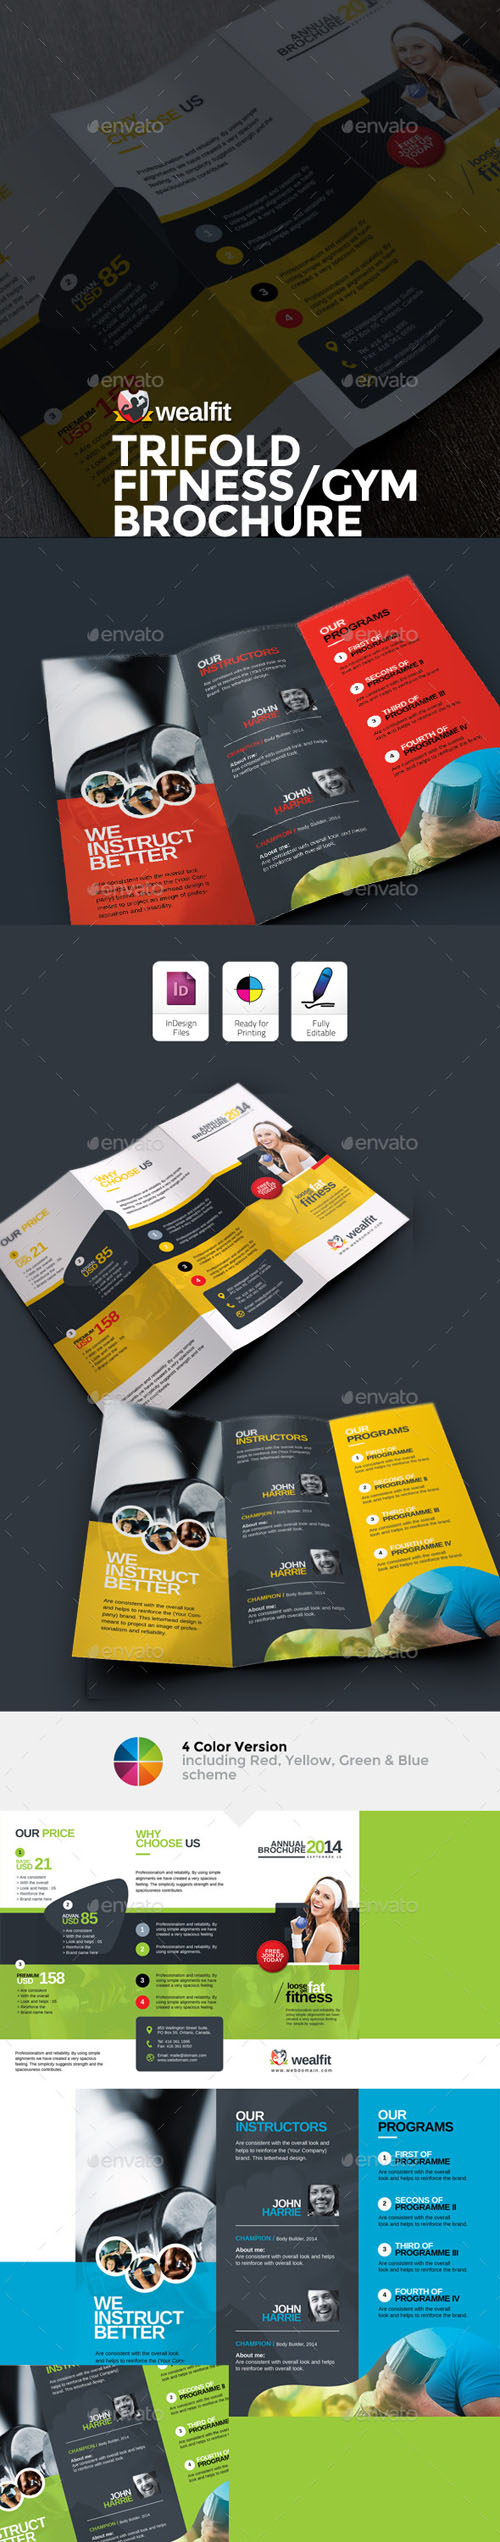 WealFit | Fitness - Gym Trifold Brochure 10092601